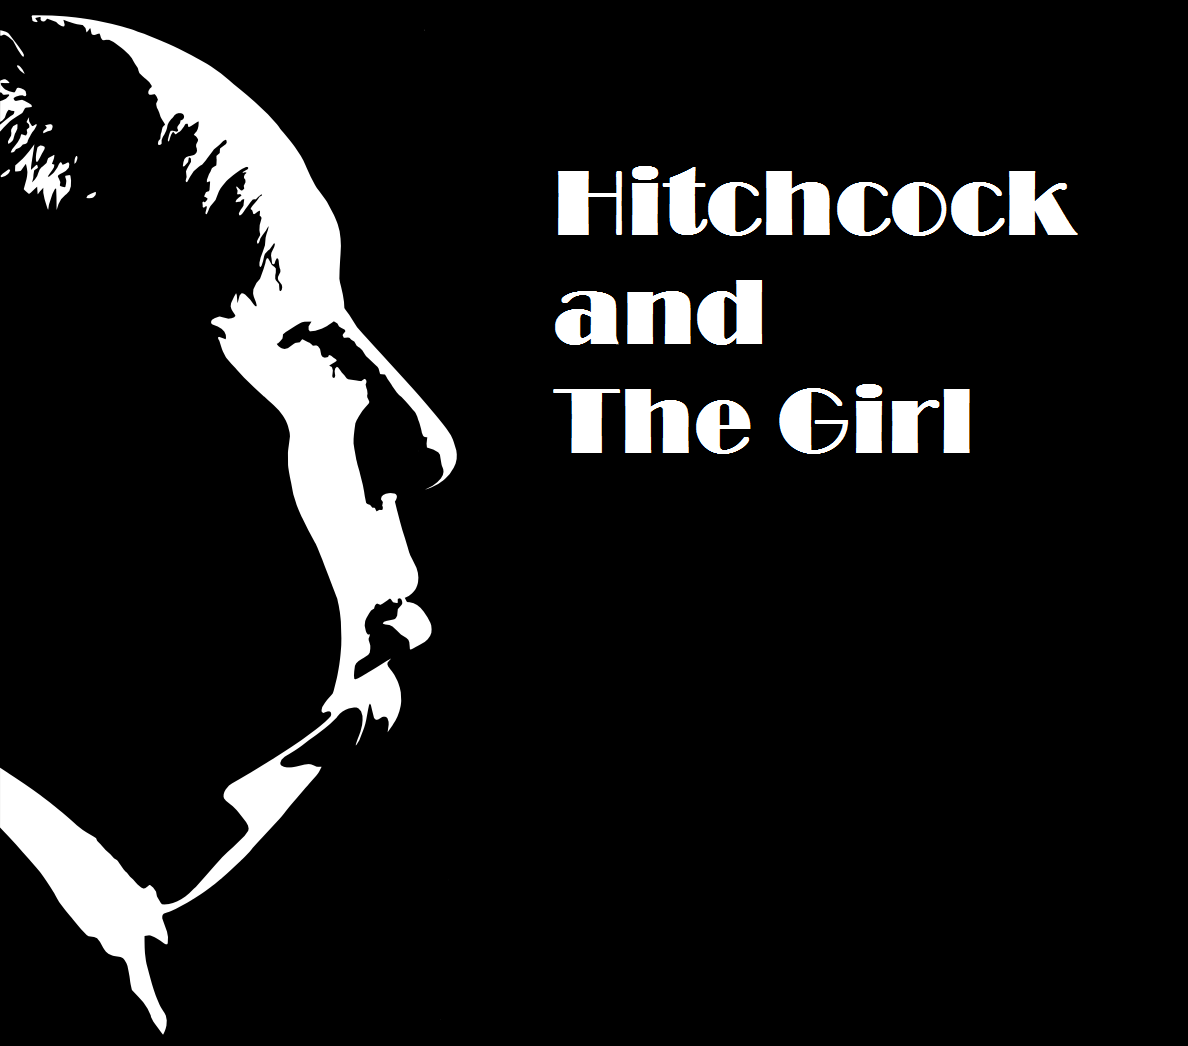 hitchcock girls Latest local news for hitchcock, tx : local news for hitchcock, tx continually updated from thousands of sources on the web.